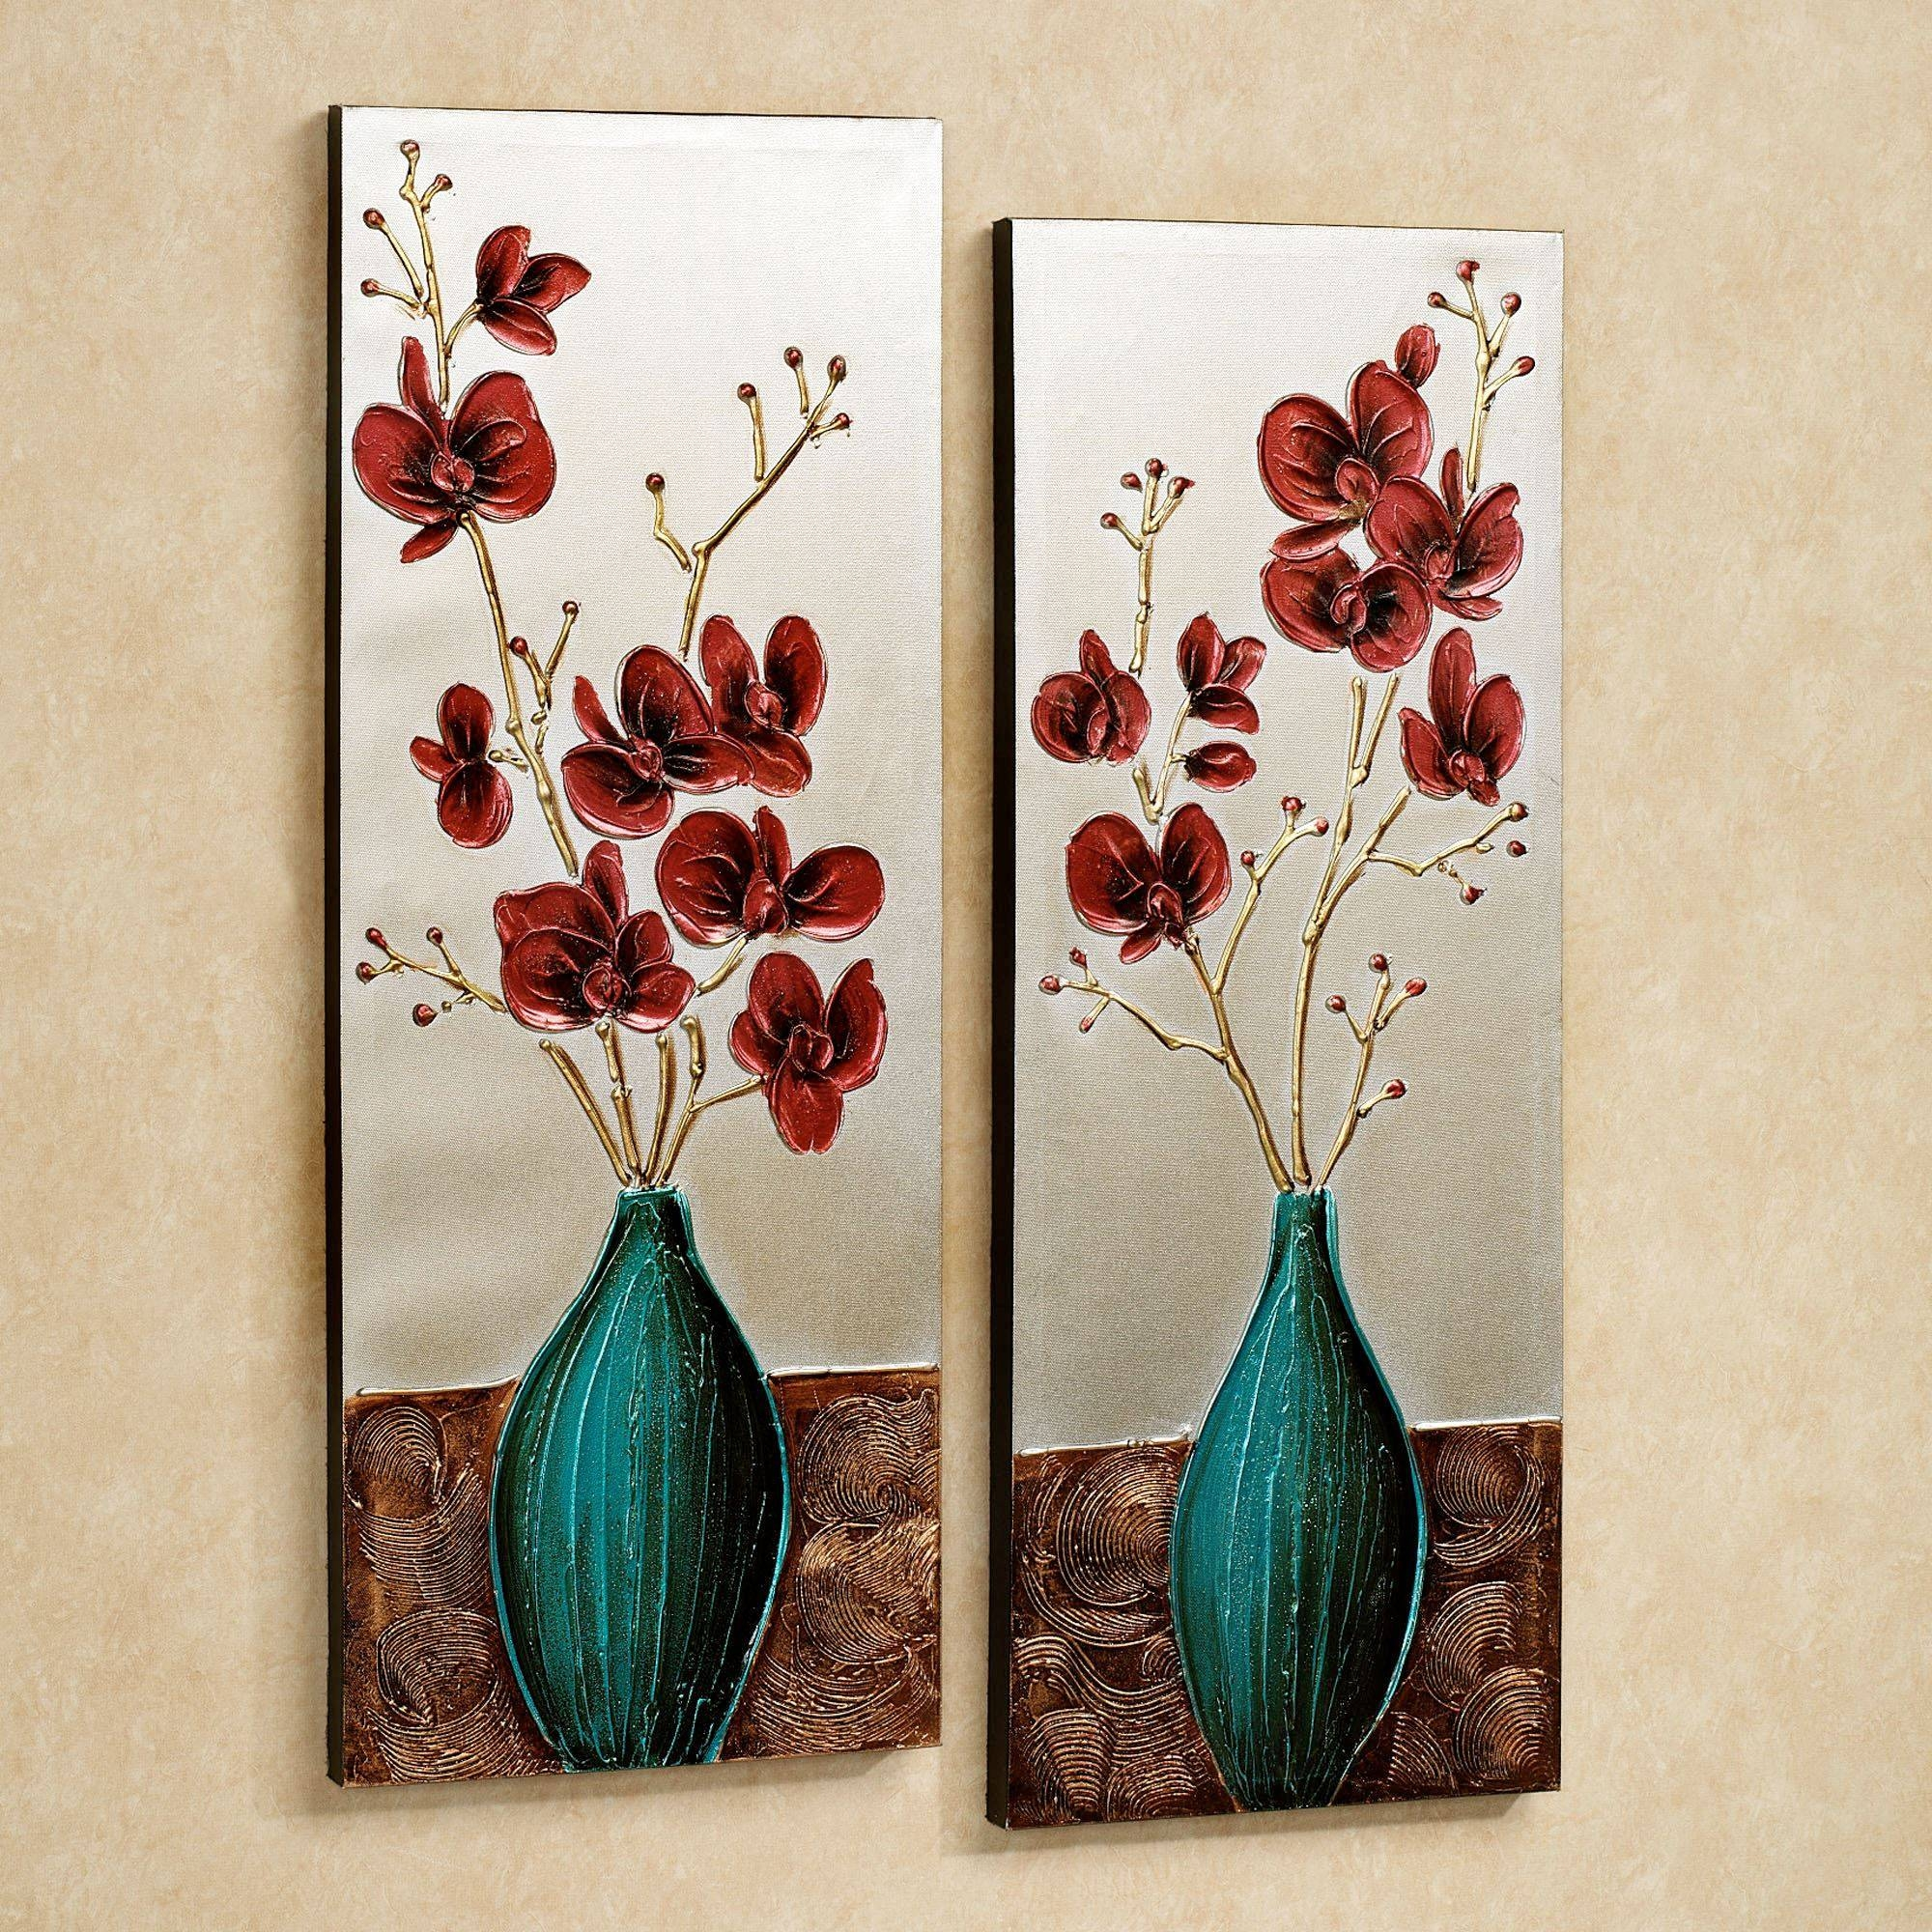 Orchid Medley Floral Canvas Wall Art Set Inside Recent Floral Wall Art Canvas (View 14 of 20)